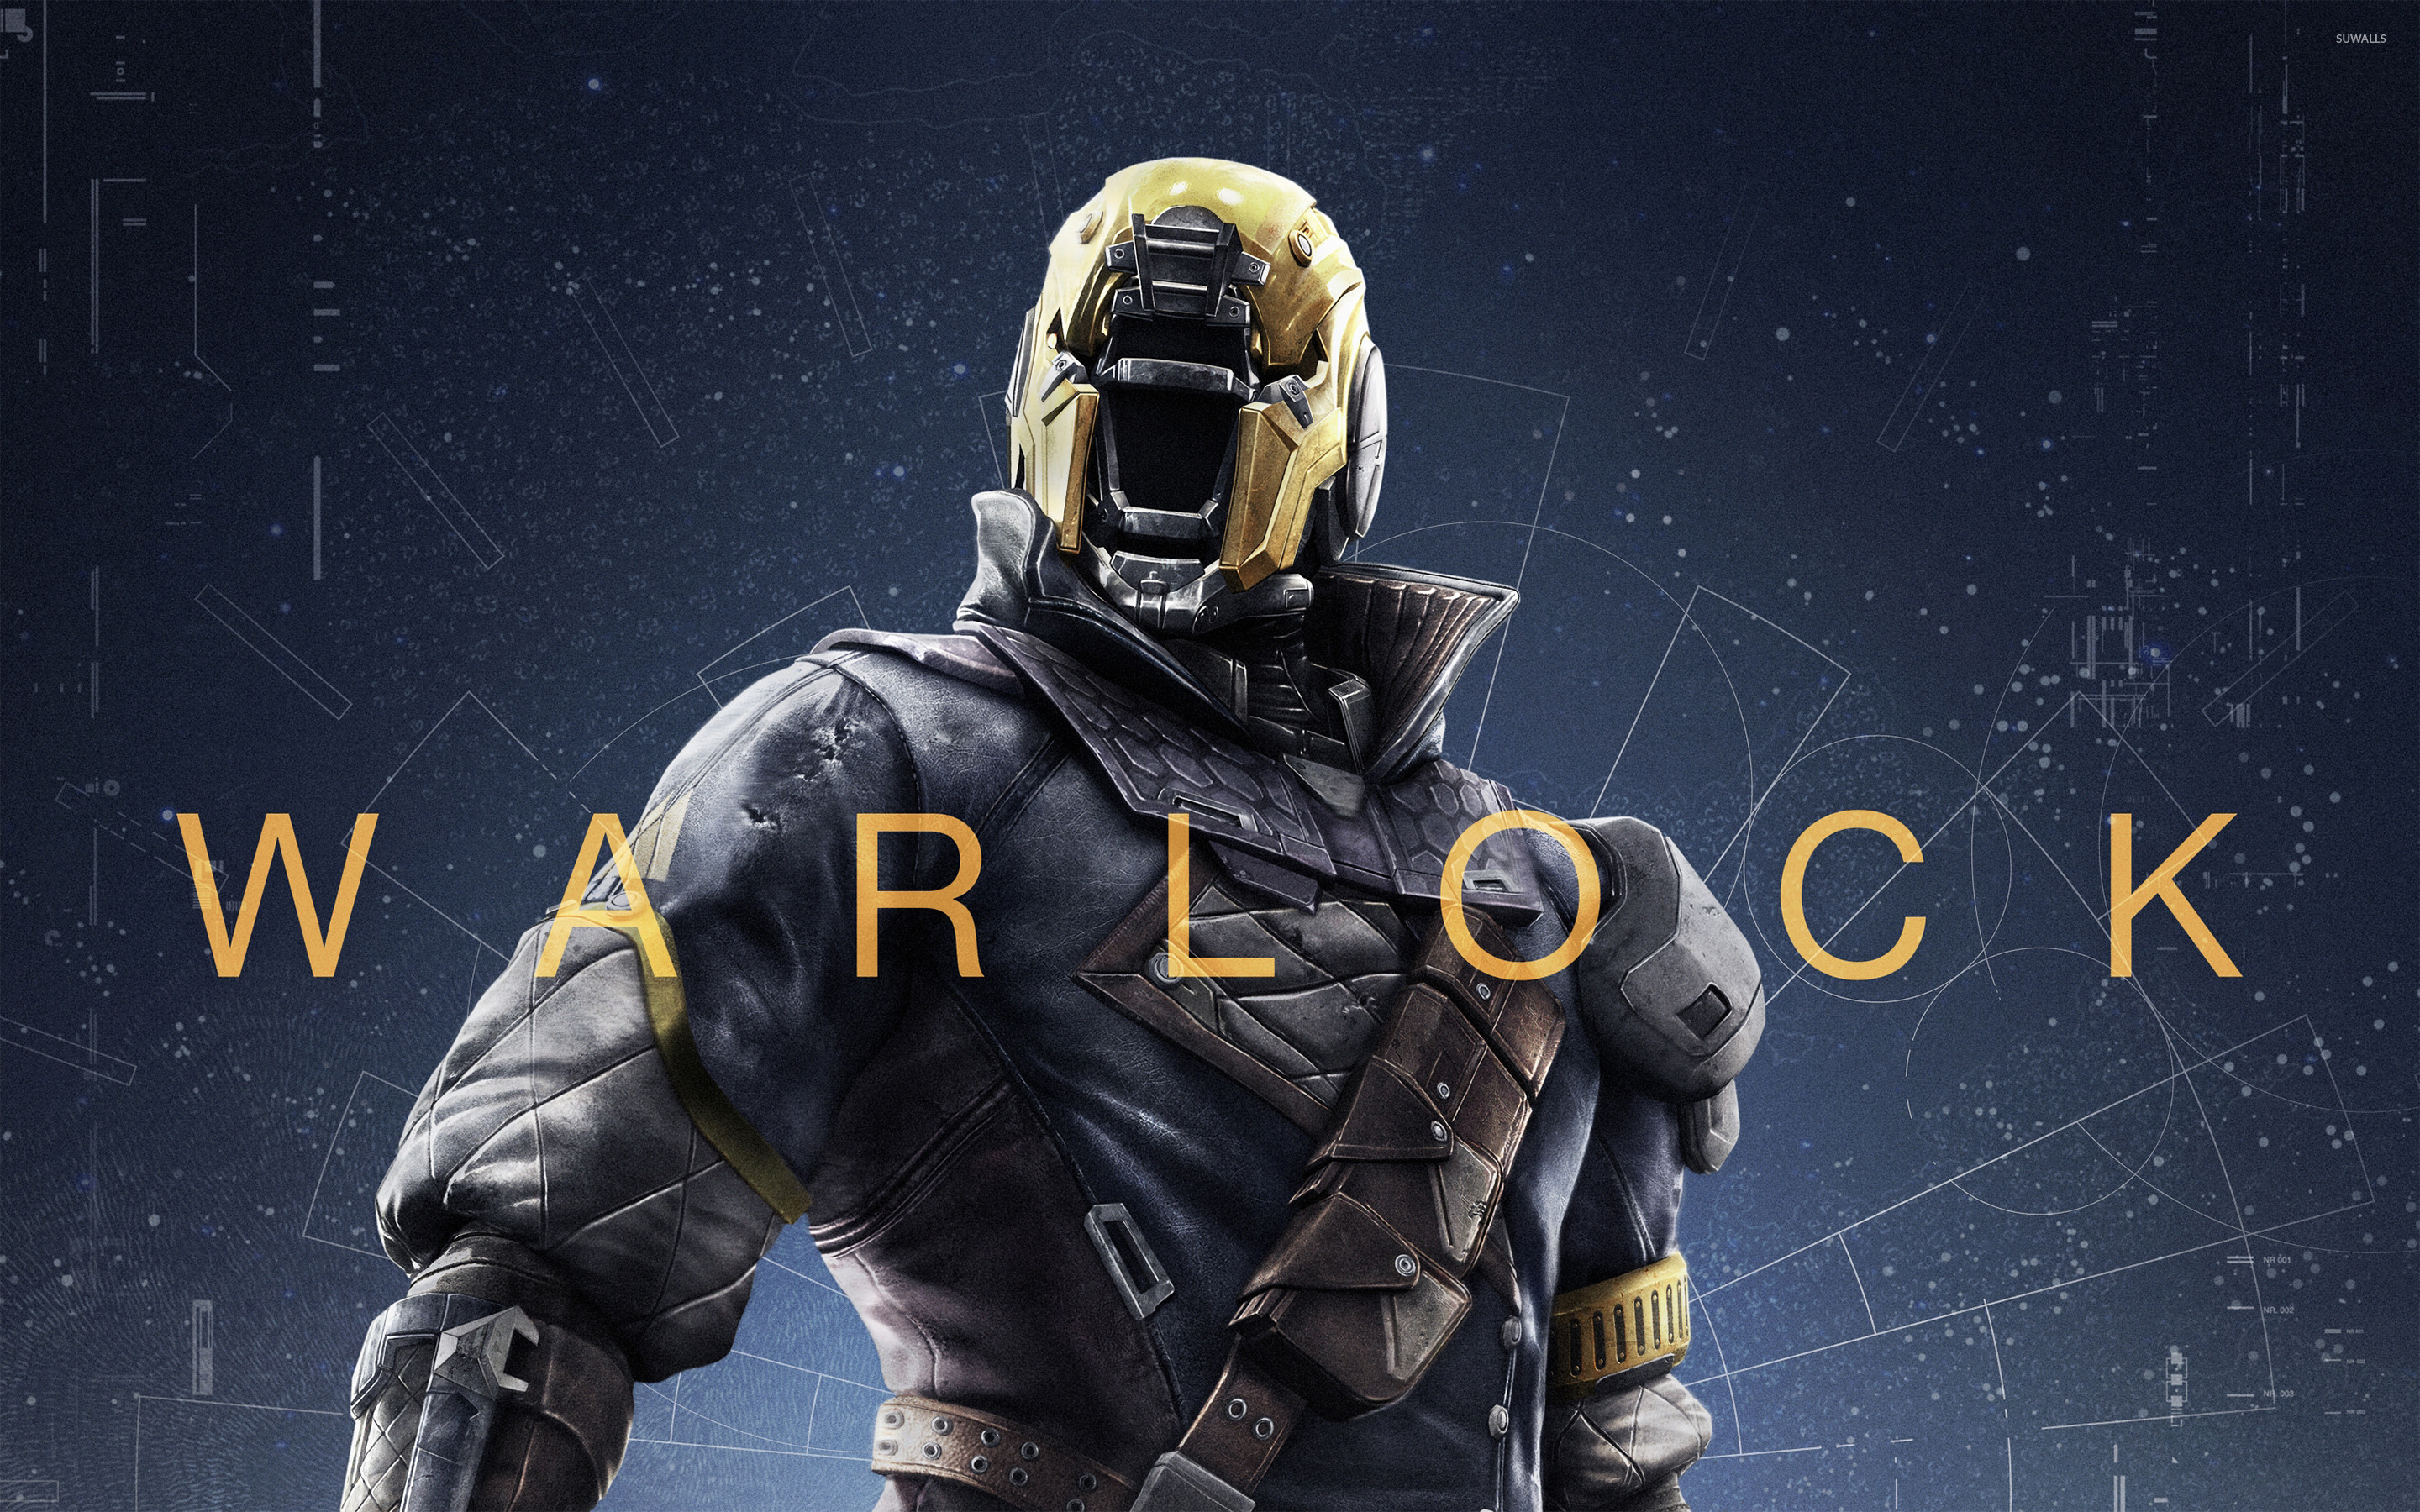 Warlock - Destiny wallpaper - Game wallpapers - #32268